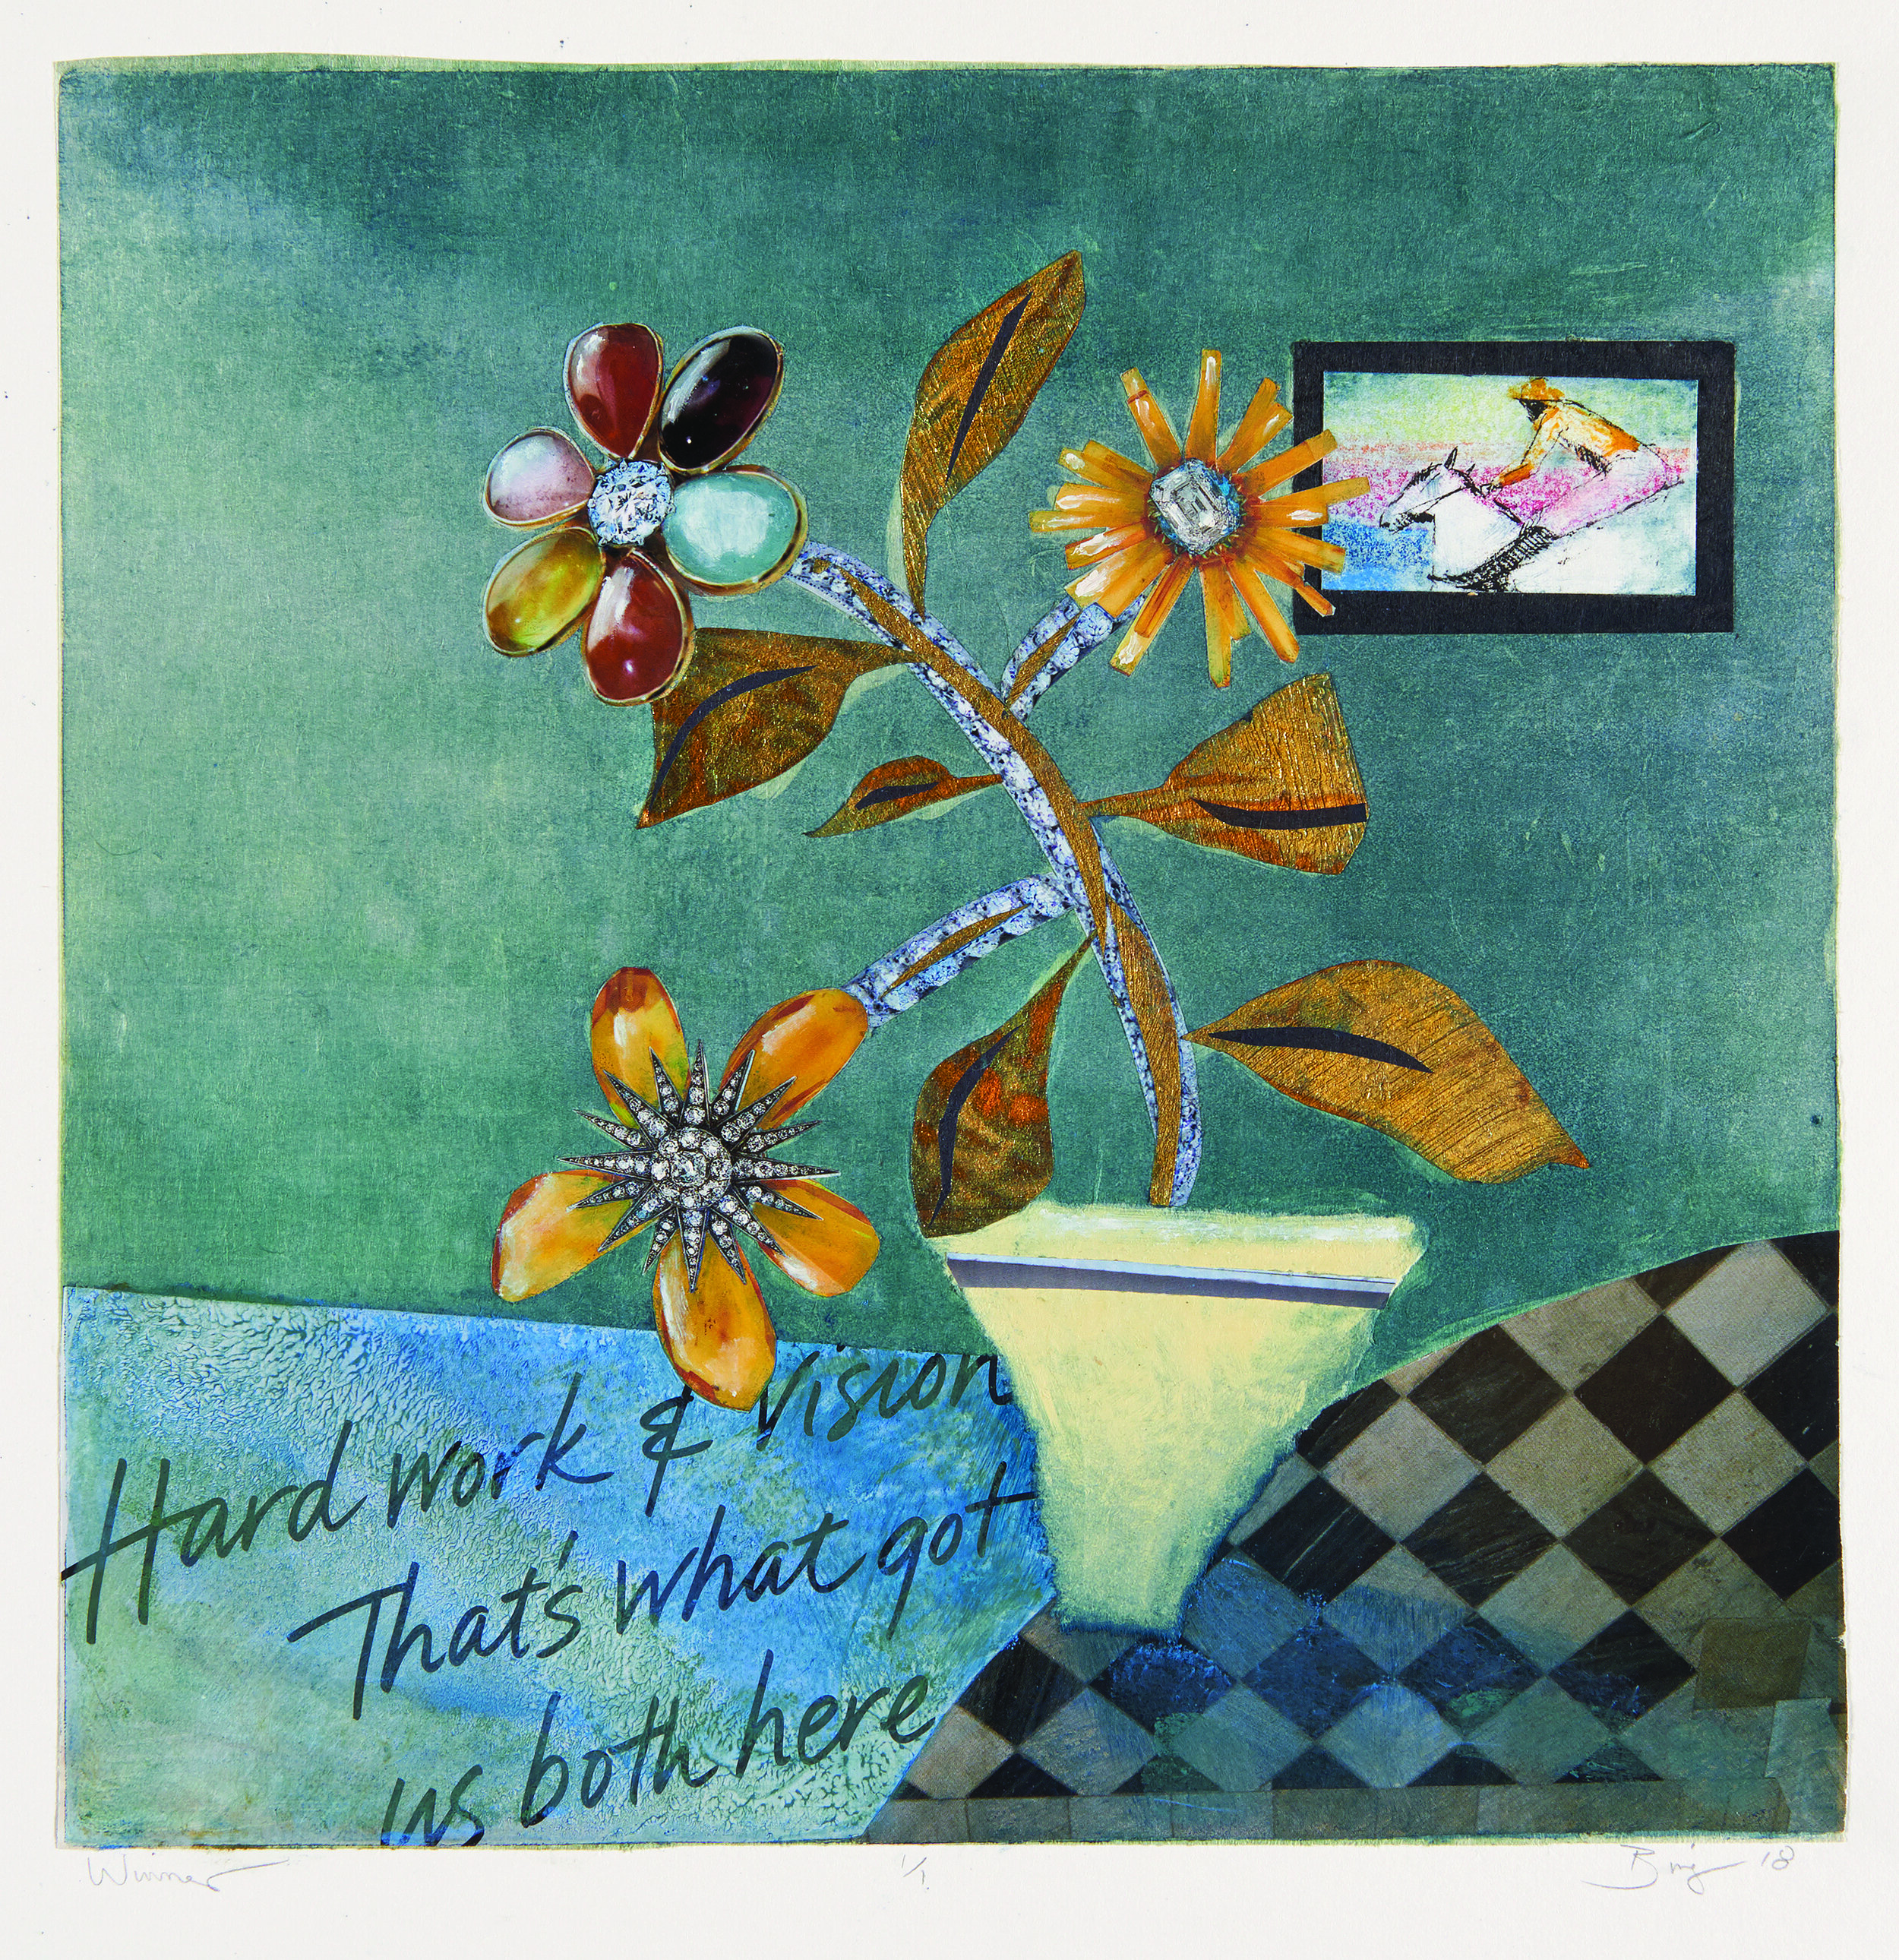 Monotype print of a blue room with textured table, flower, texts on the floor and a painting hanging on the wall